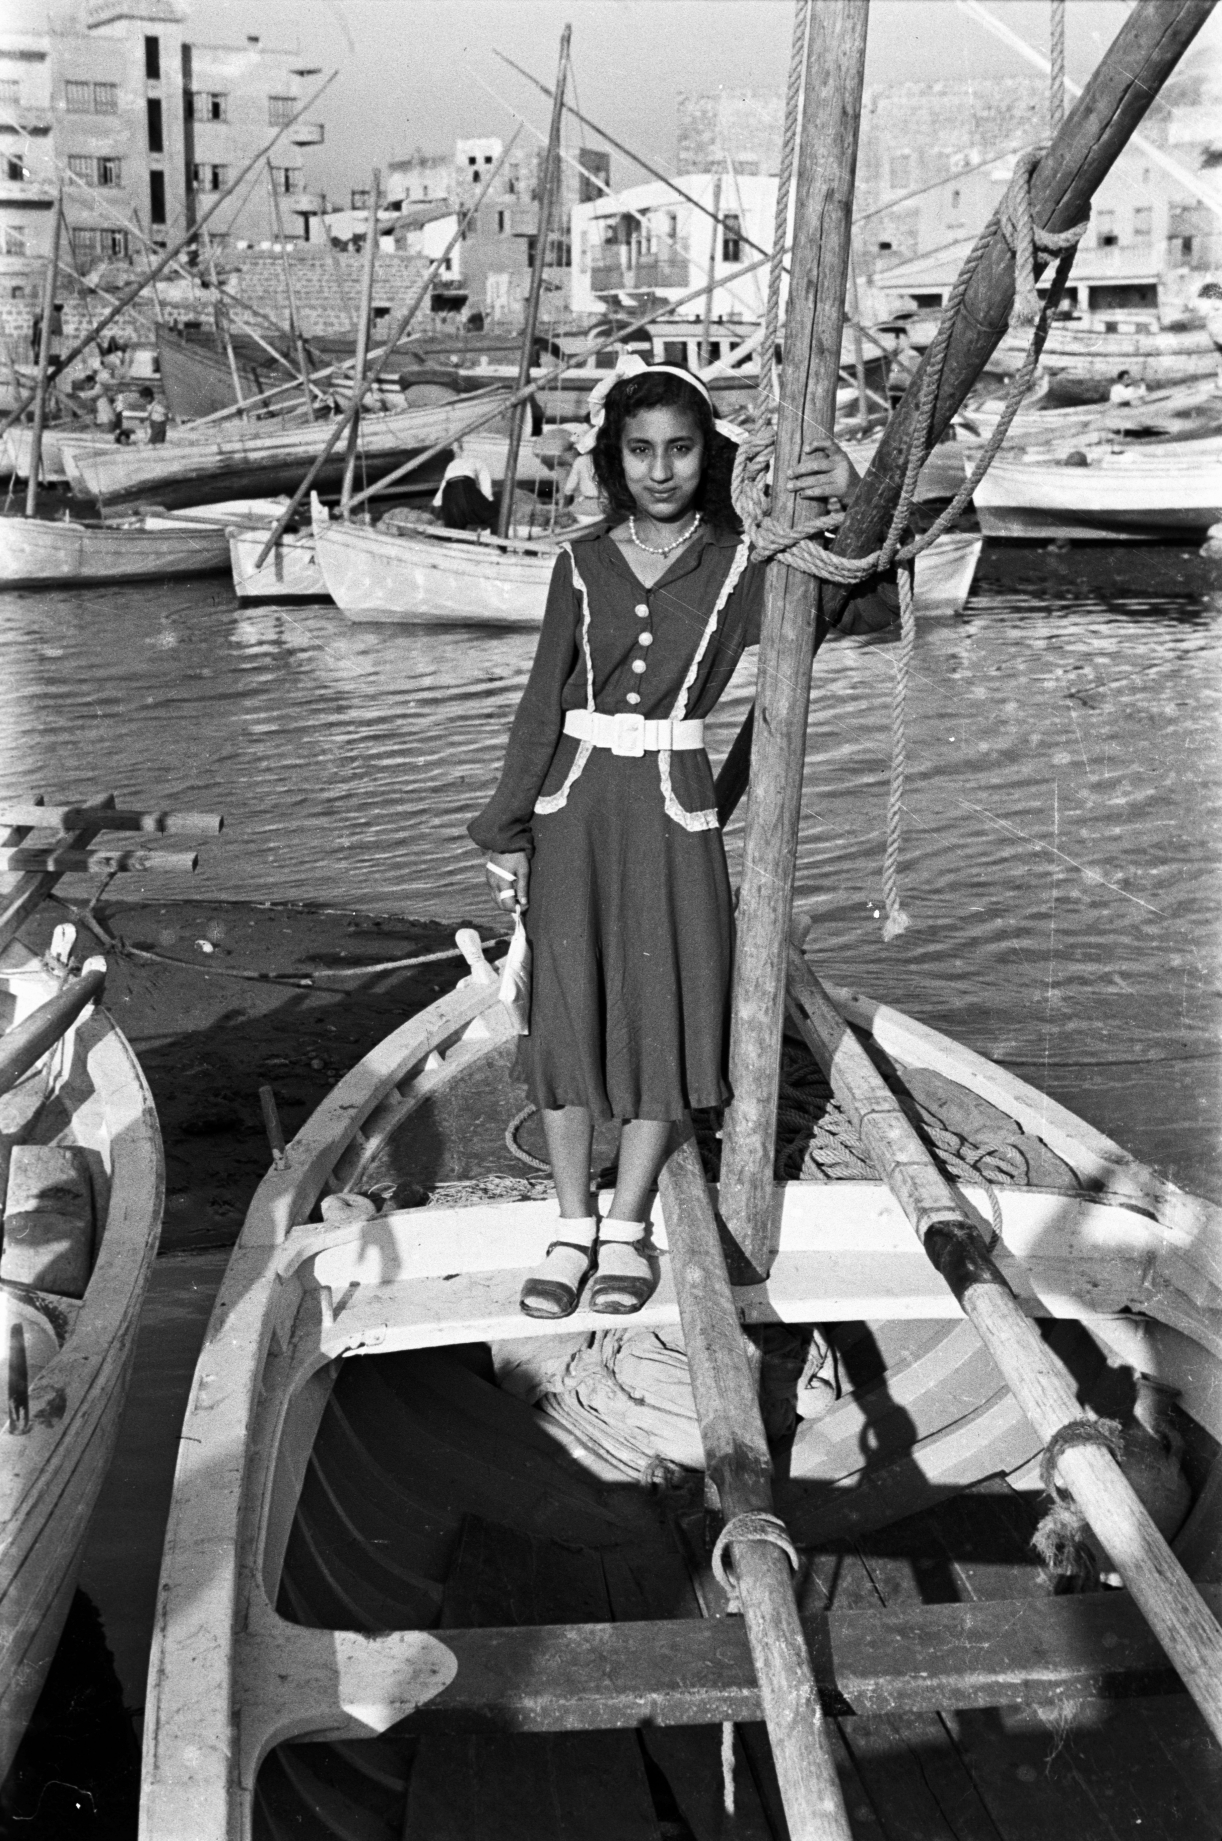 Hashem El Madani: Promenades, Men and women posing on fishing boats